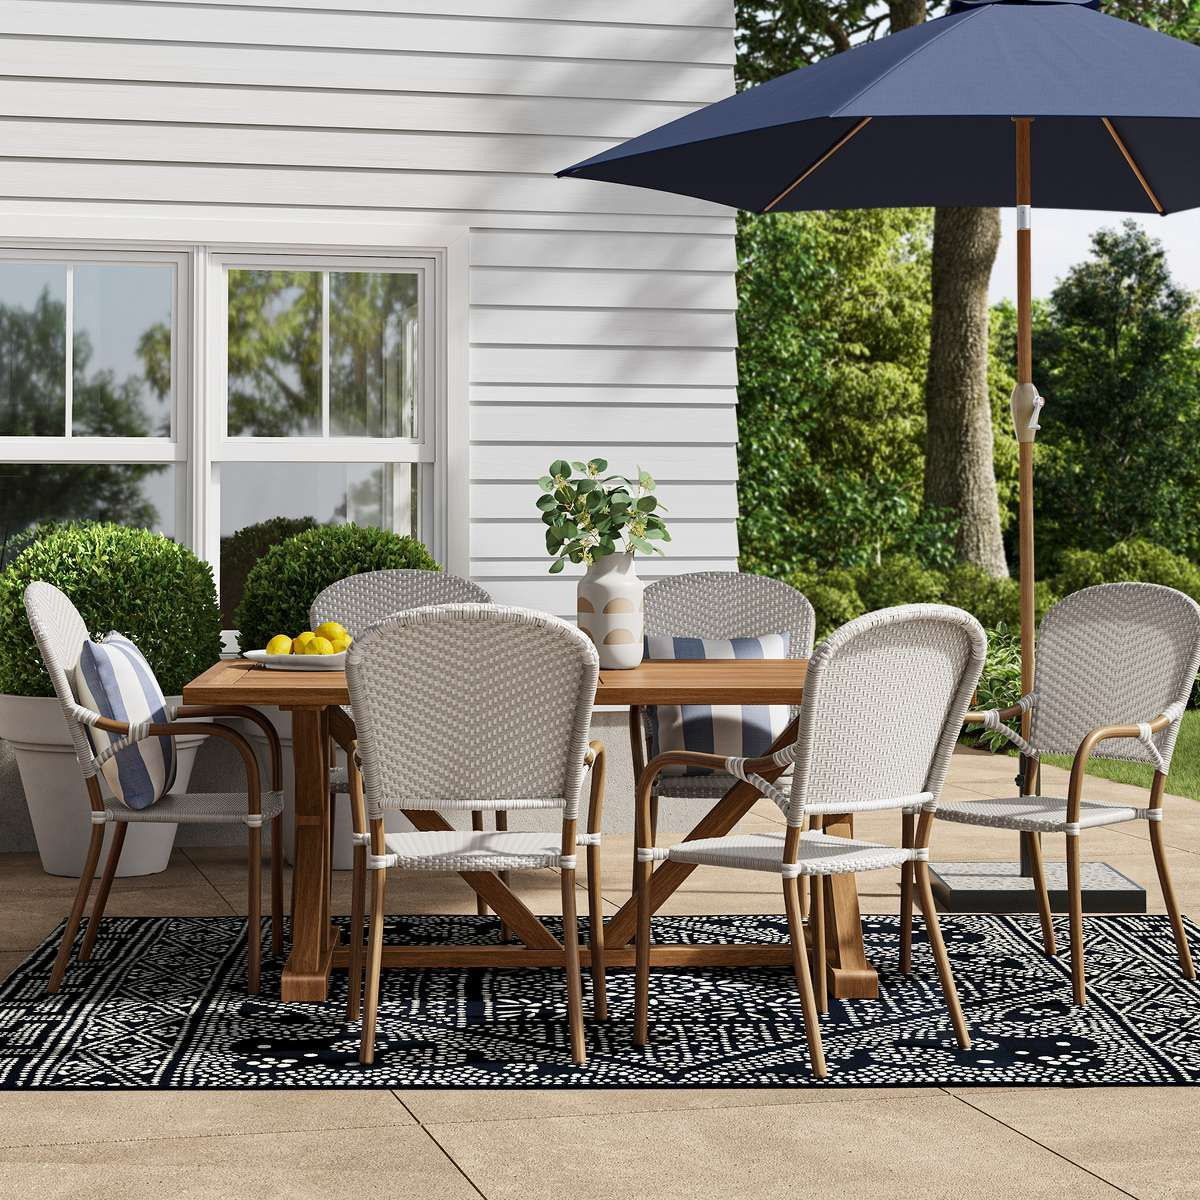 Create a welcoming outdoor space with a rustic vibe. Shop ... on Target Outdoor Living id=74792